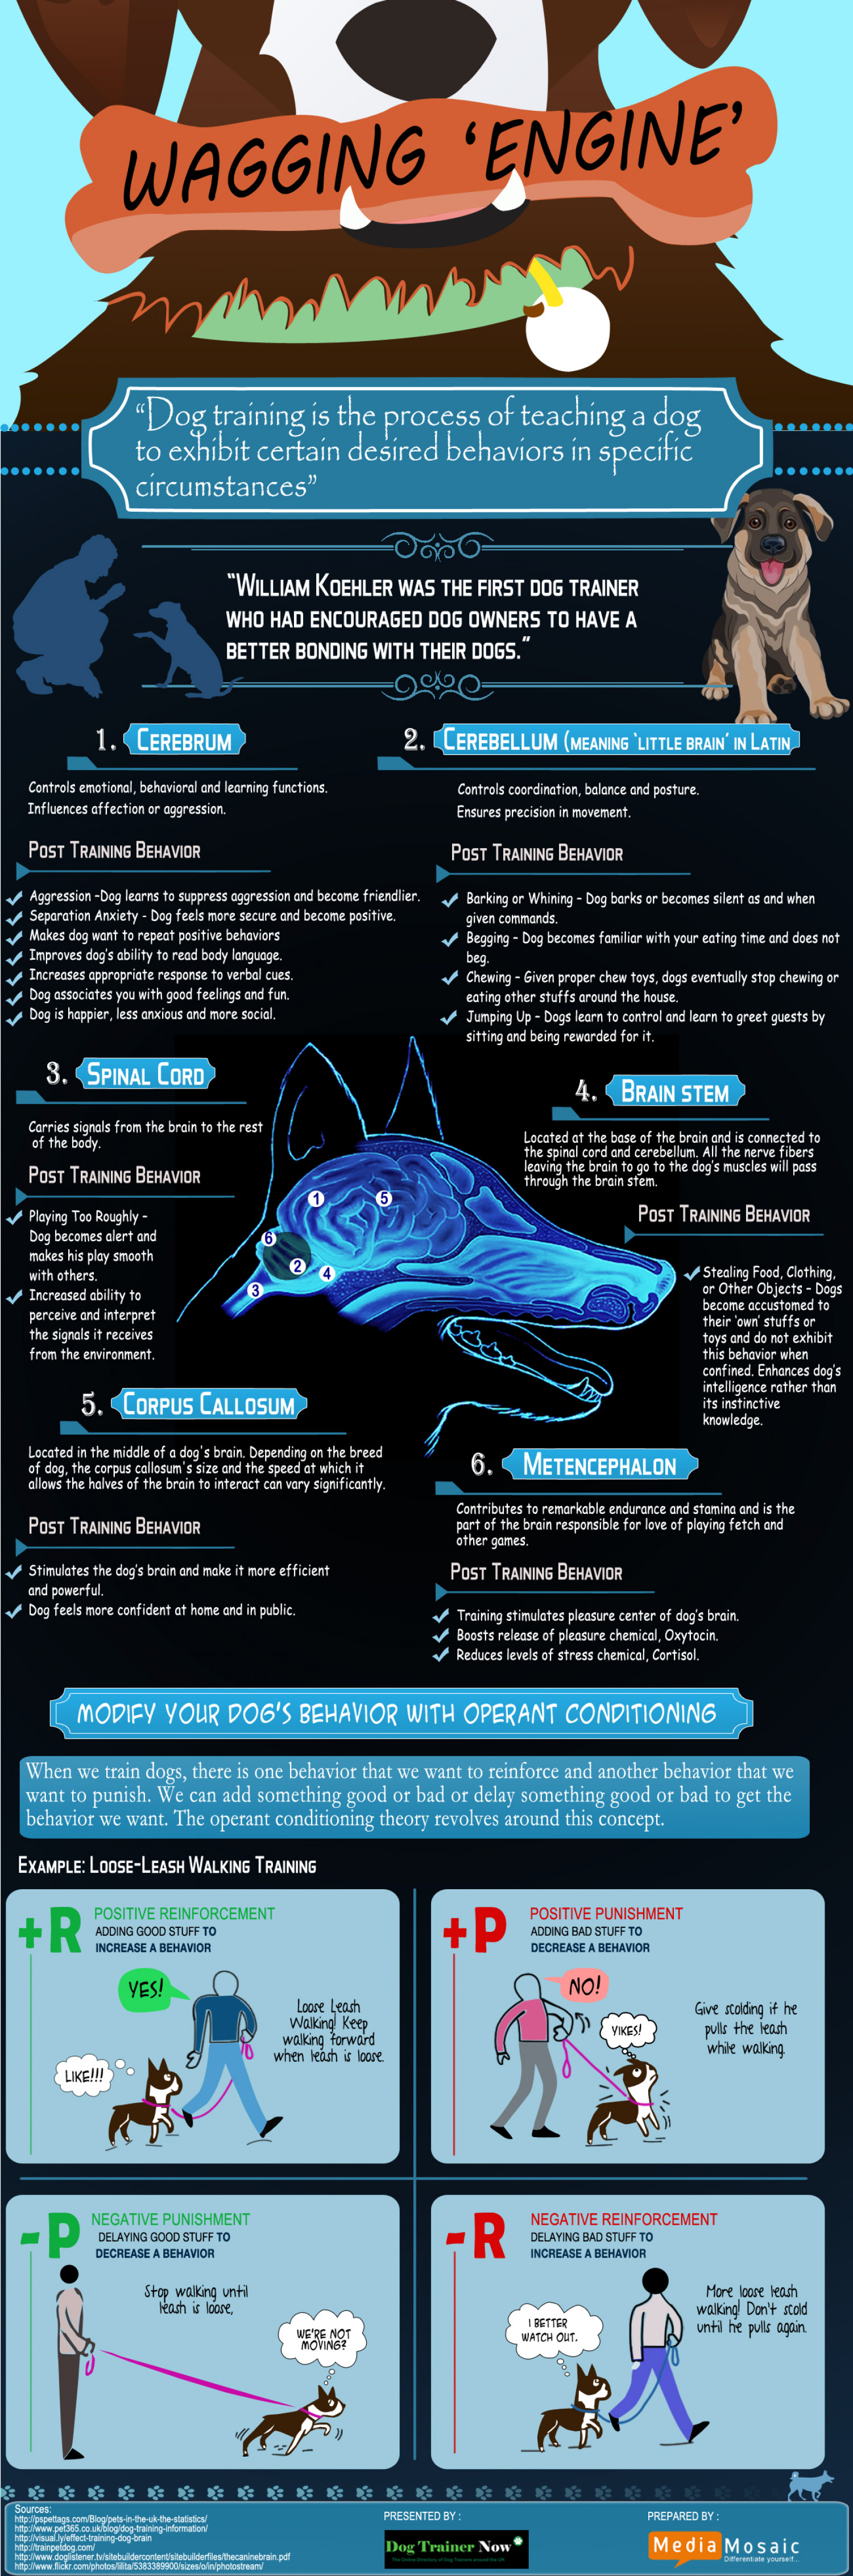 Dog Training : How This Wagging Engine Works! Infographic